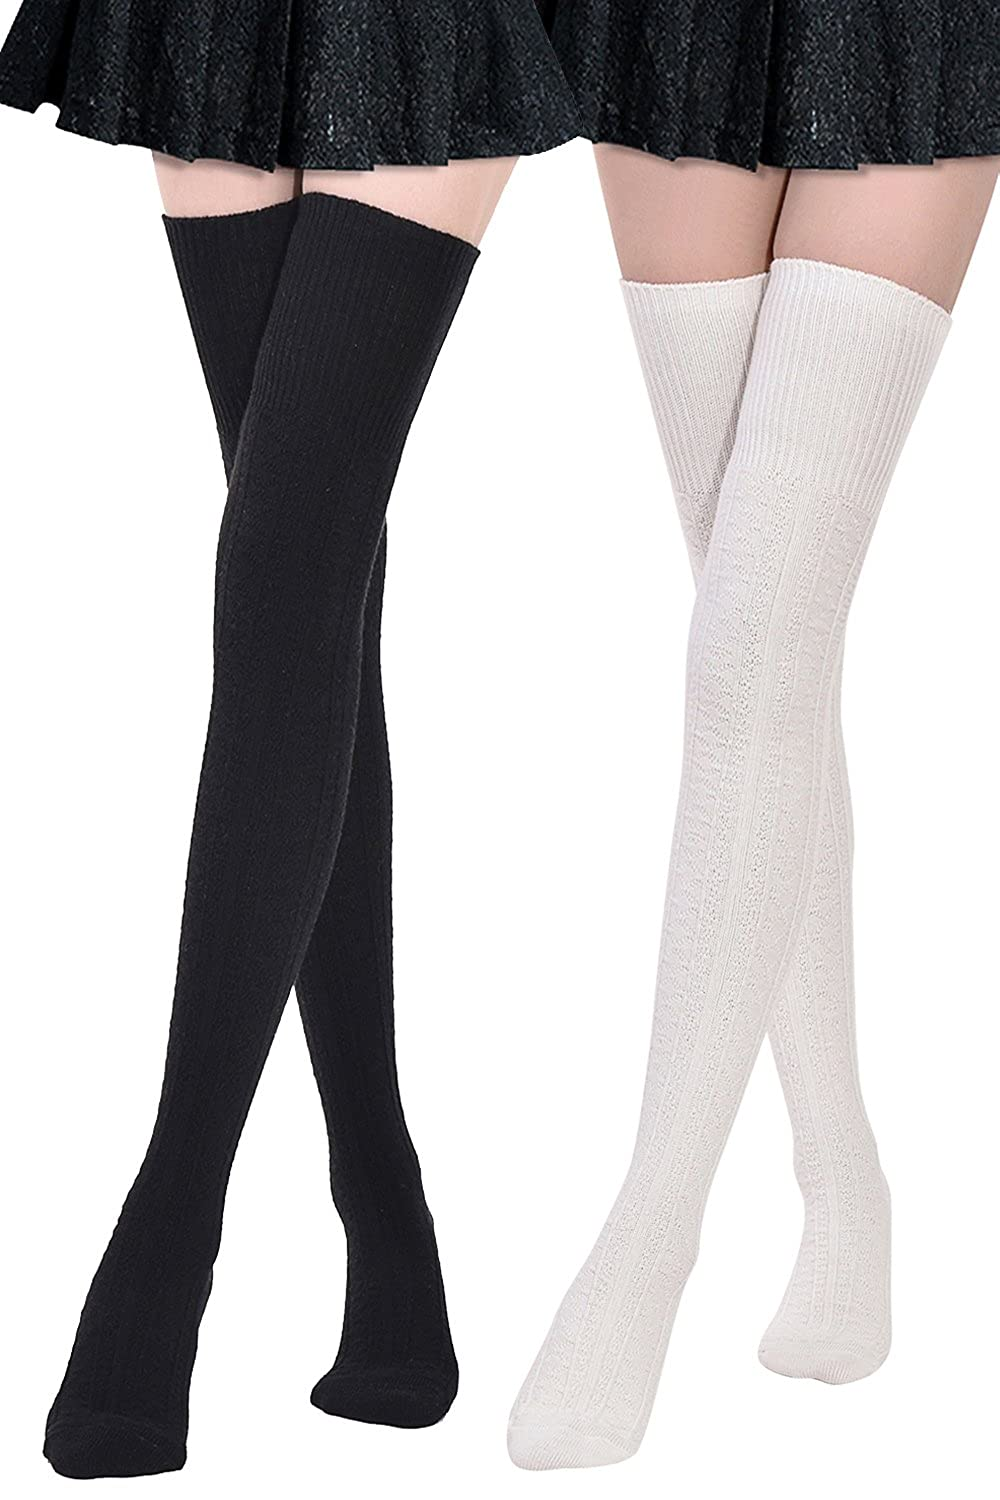 Dark & White Kayhoma Extra Long Cotton Thigh High Socks Over the Knee High Boot Stockings Cotton Leg Warmers